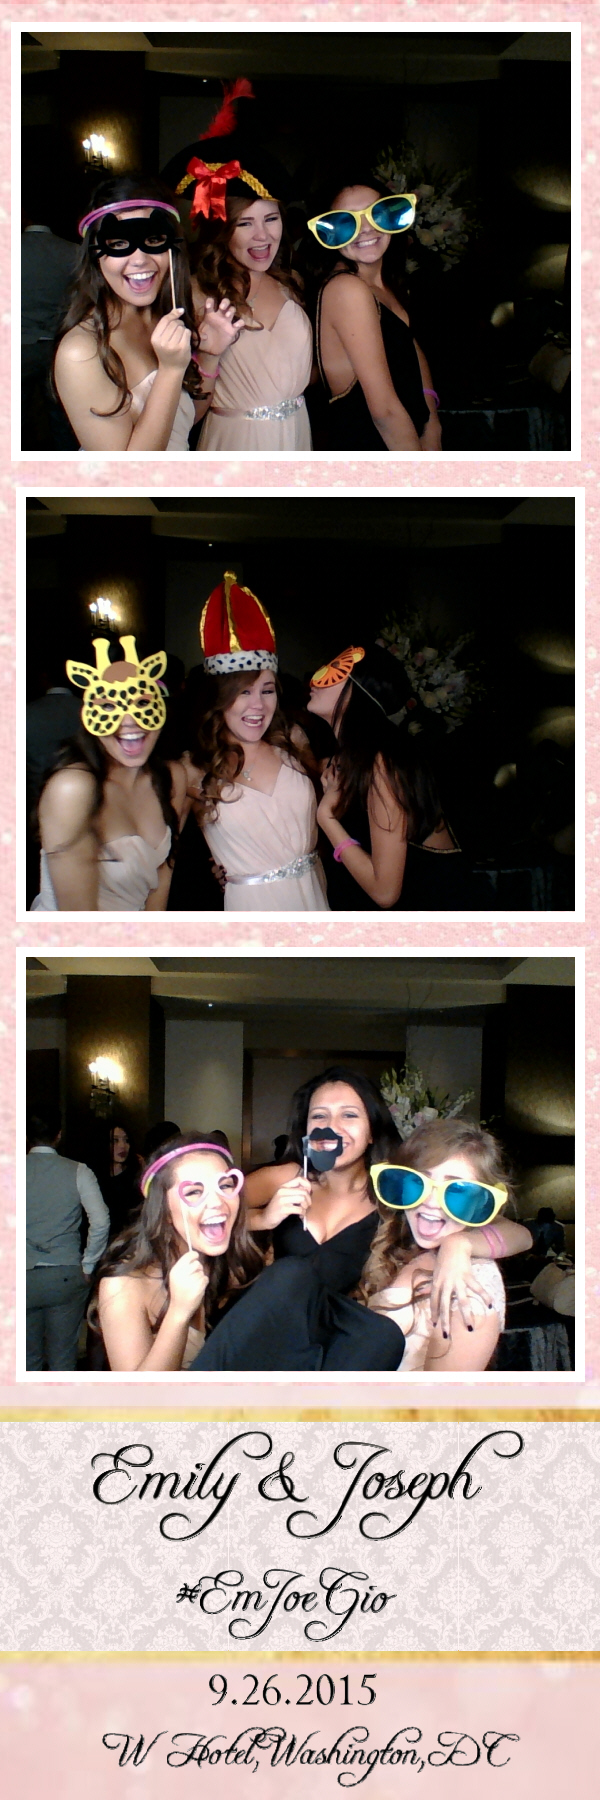 Guest House Events Photo Booth E&J (54).jpg